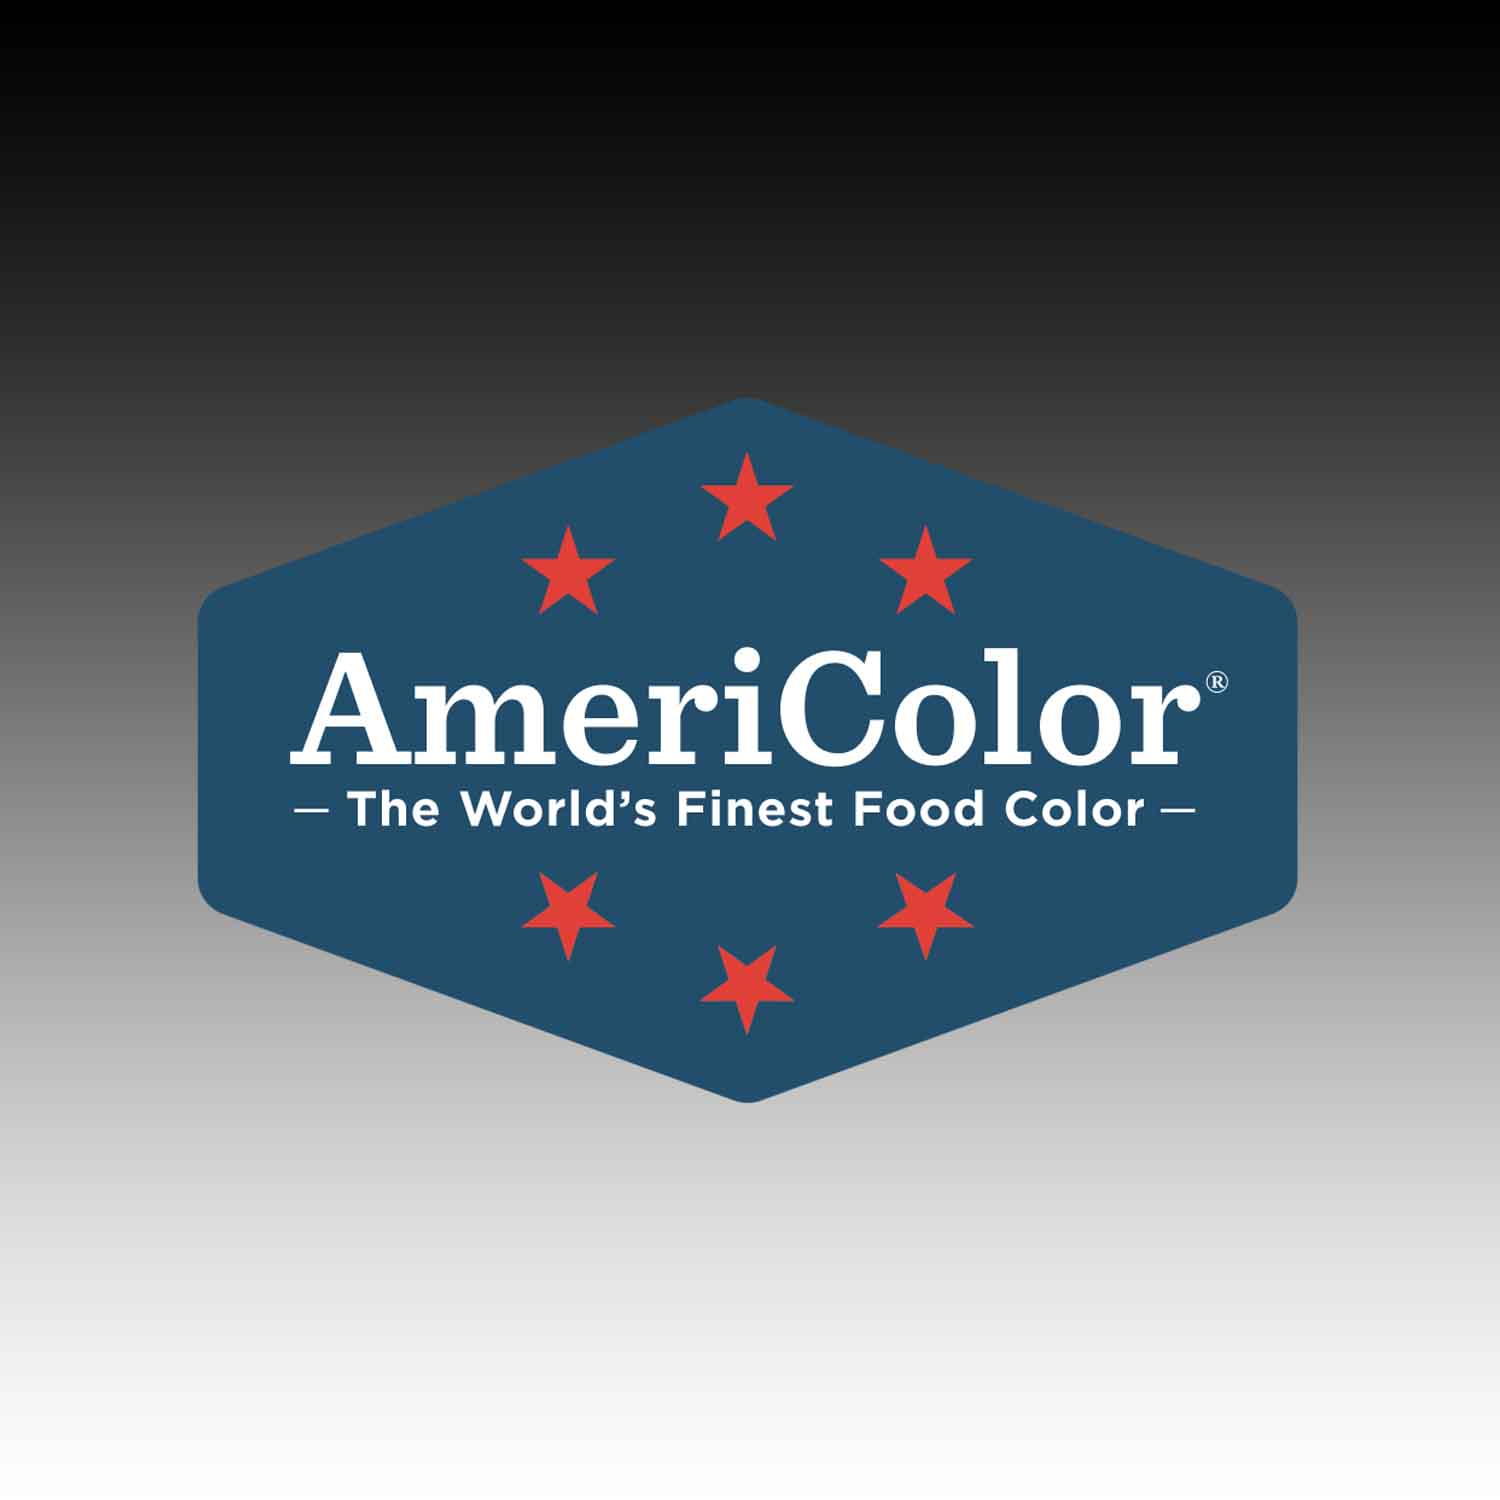 Super Black Americolor AmeriMist Airbrush Food Color